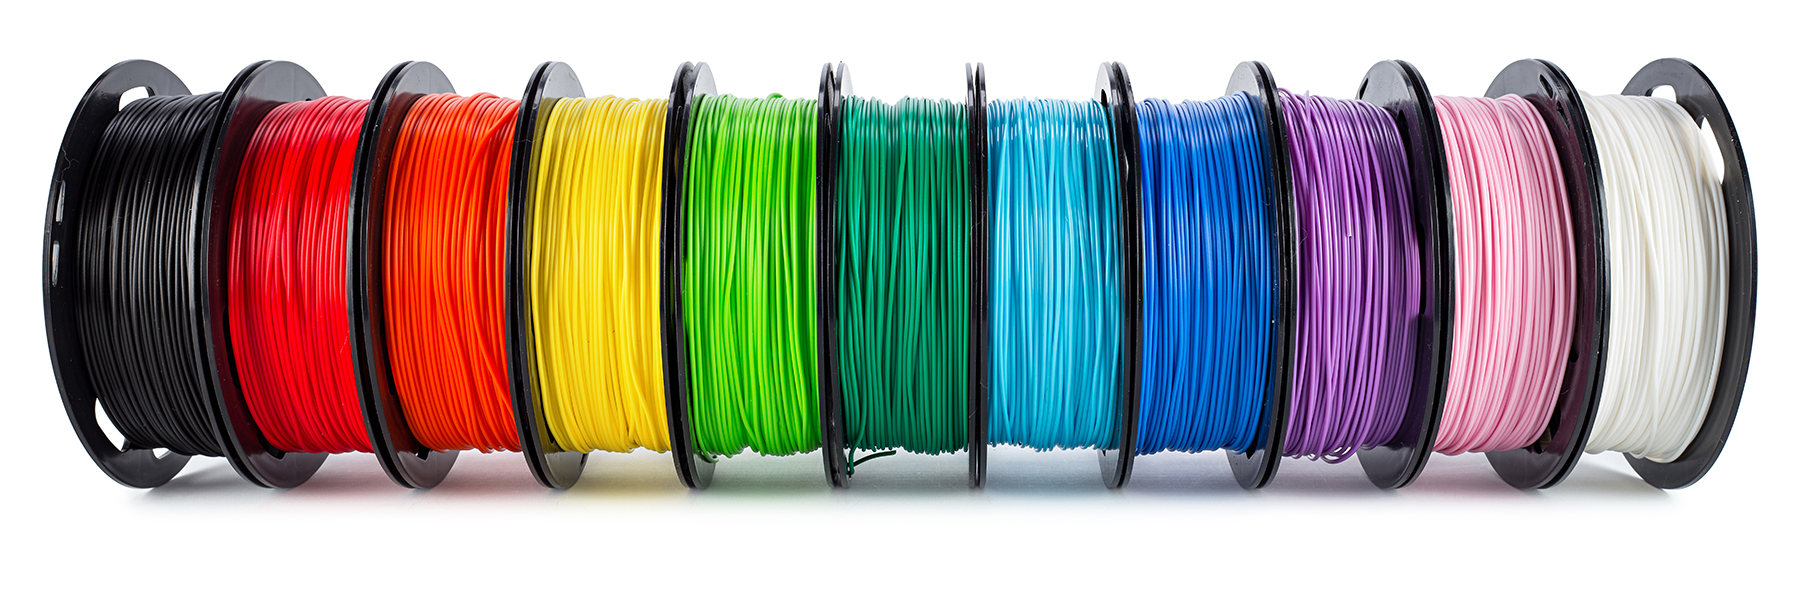 row of multi-colored 3d printer filament plastic material isolated on white background